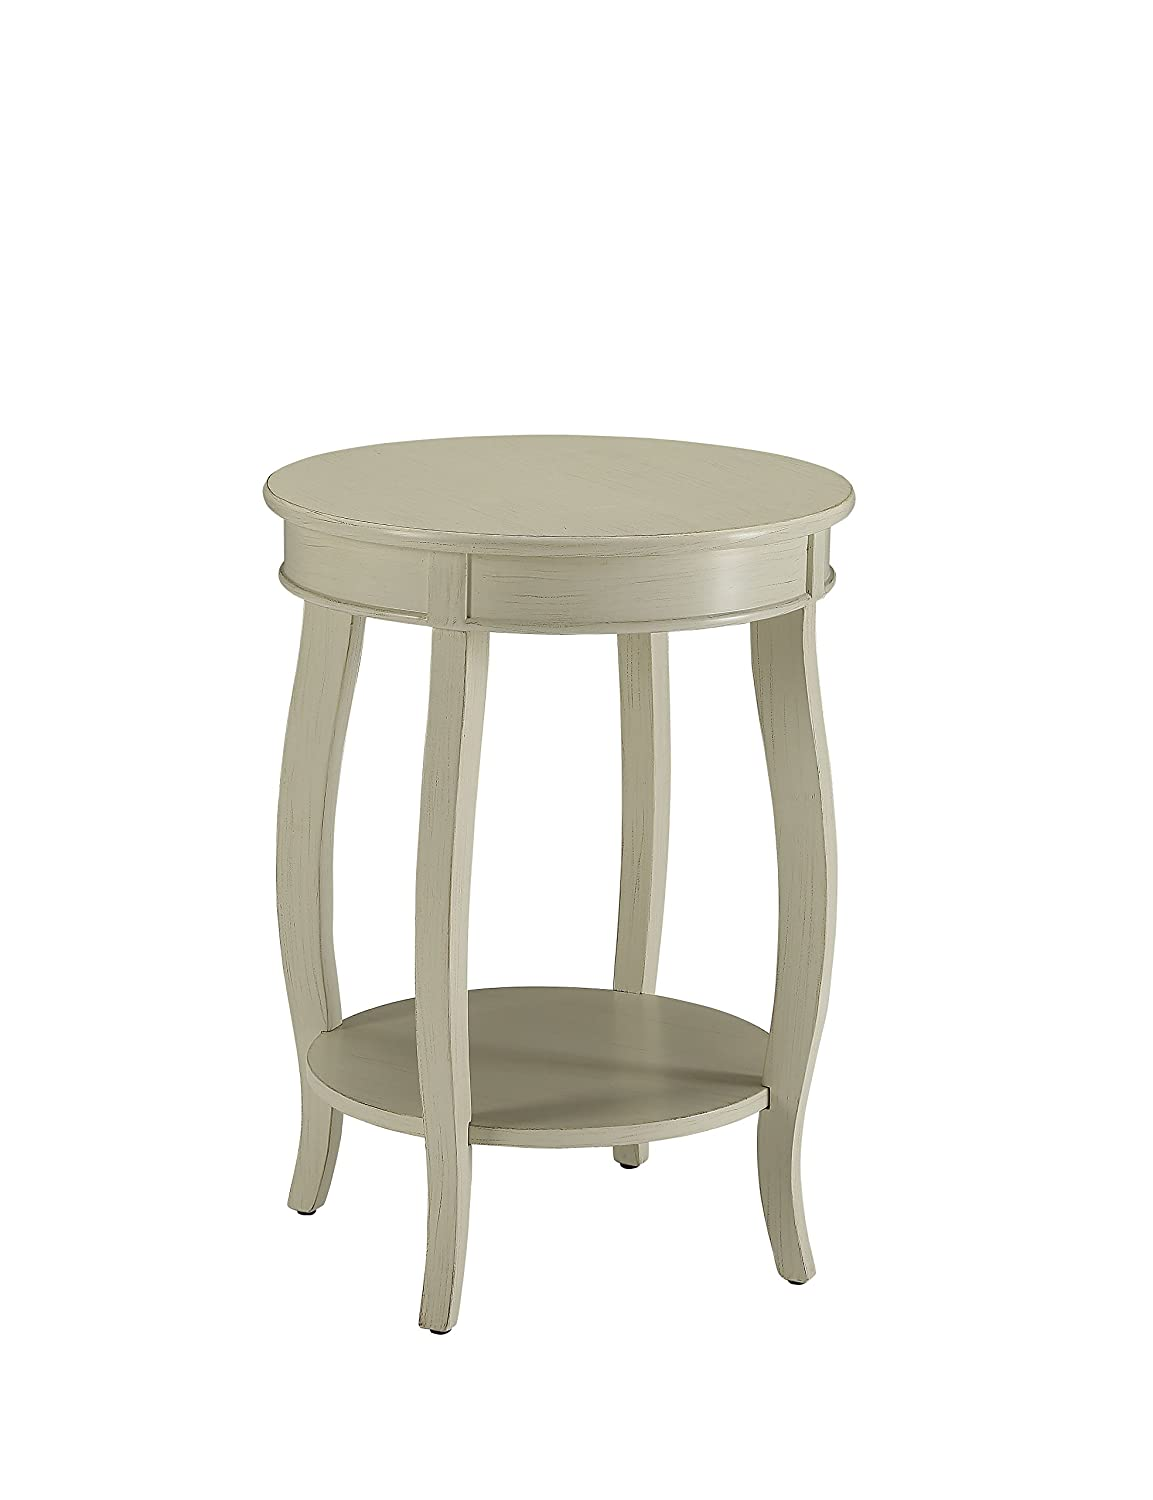 Acme Furniture 82785 Aberta Side Table, Antique White, One Size